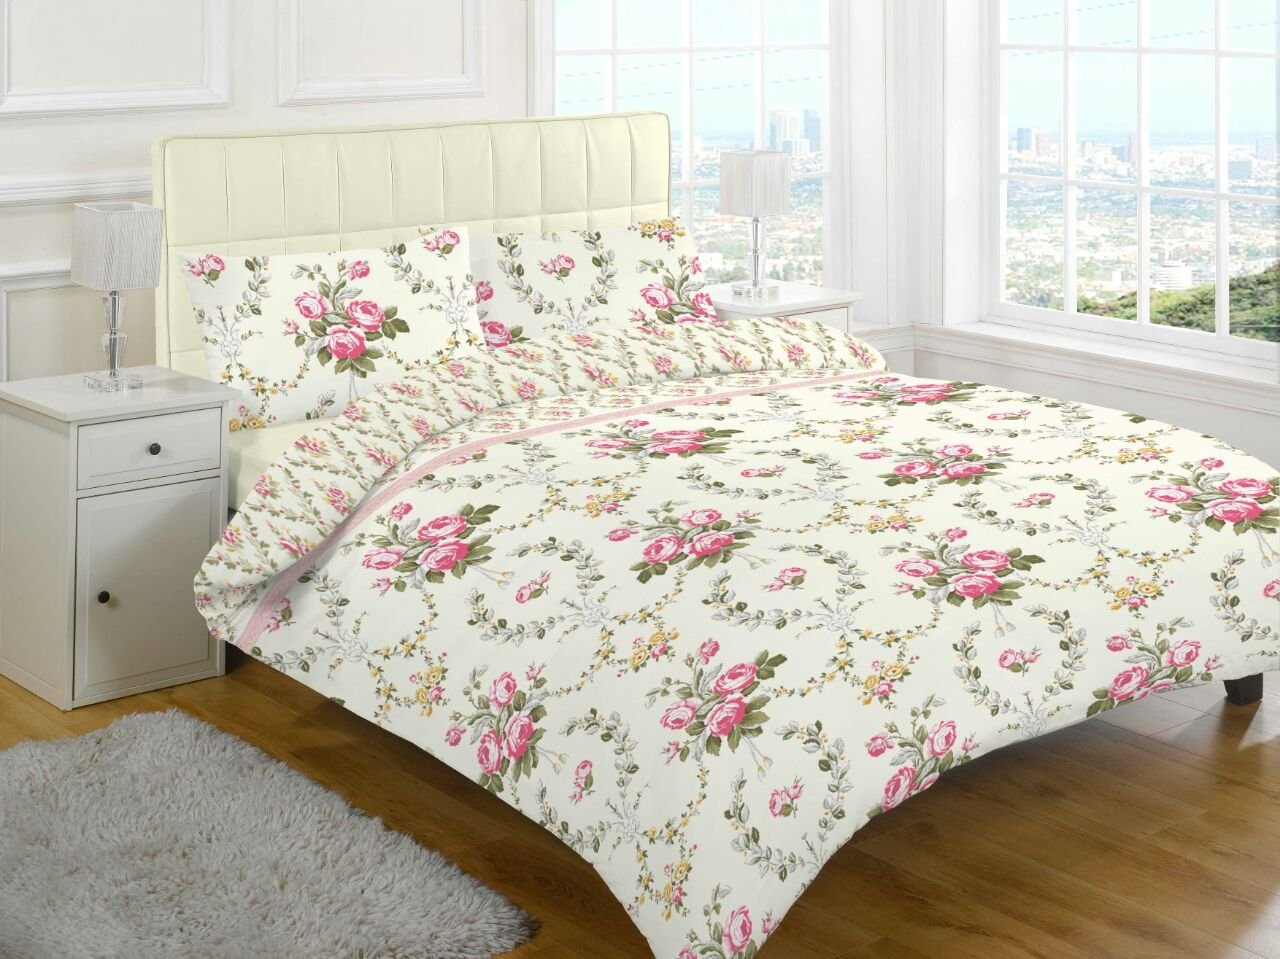 Goldstar® Flannelette Brushed Cotton Sheet Set Include Fitted Sheet, Flat Sheet & Pillow Case (Double, Olivia Natural Floral)